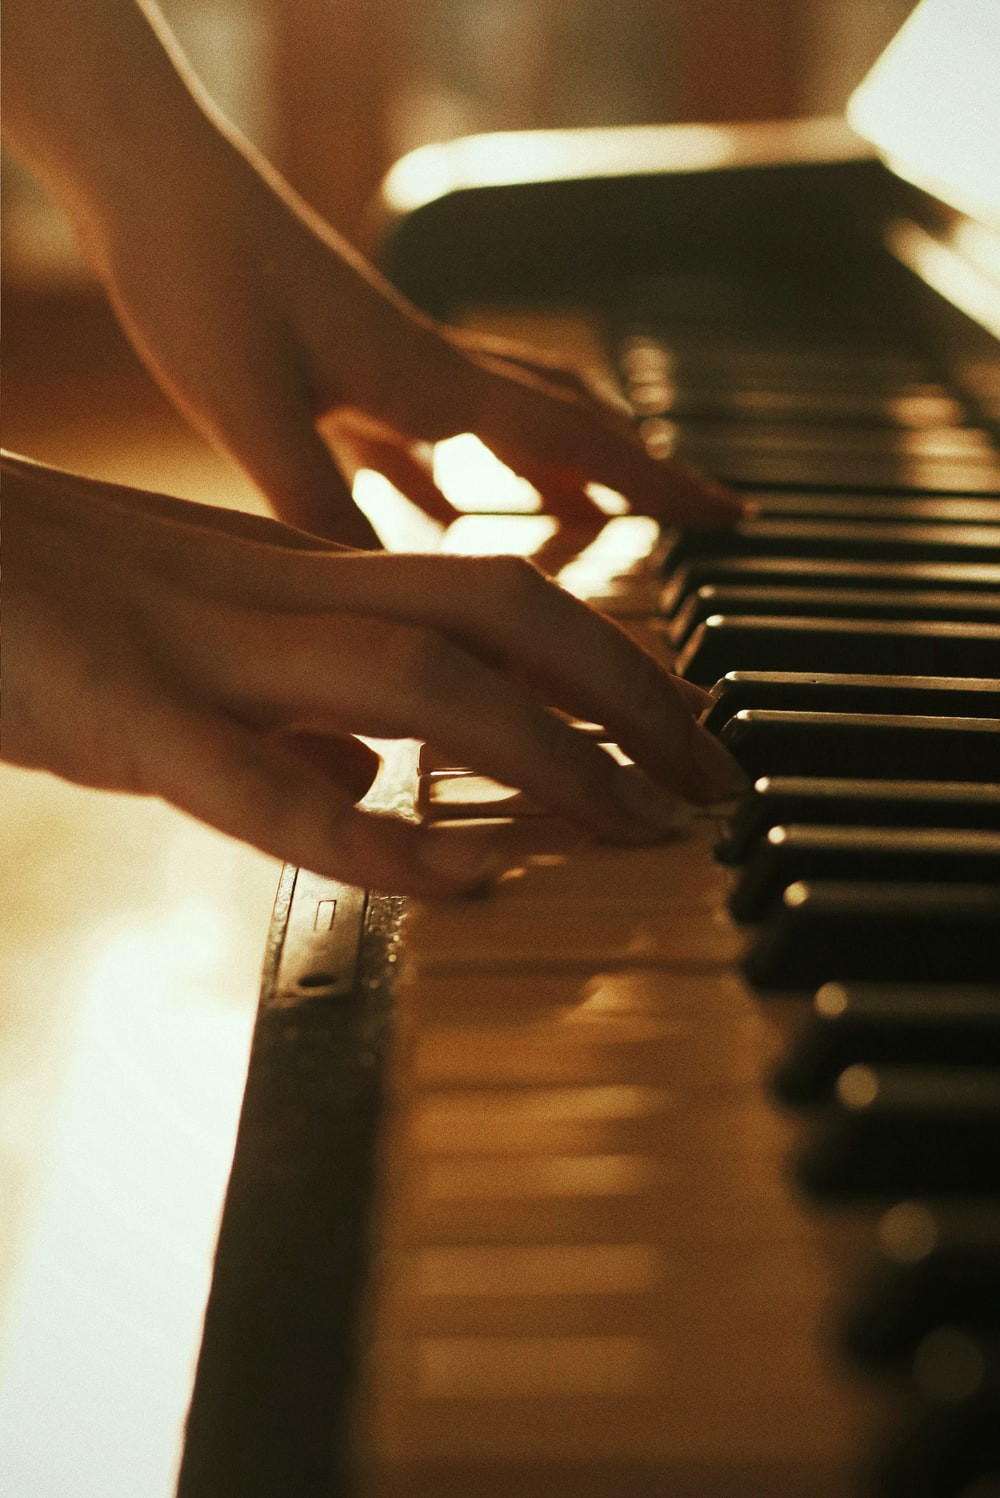 Female hands playing a piano.